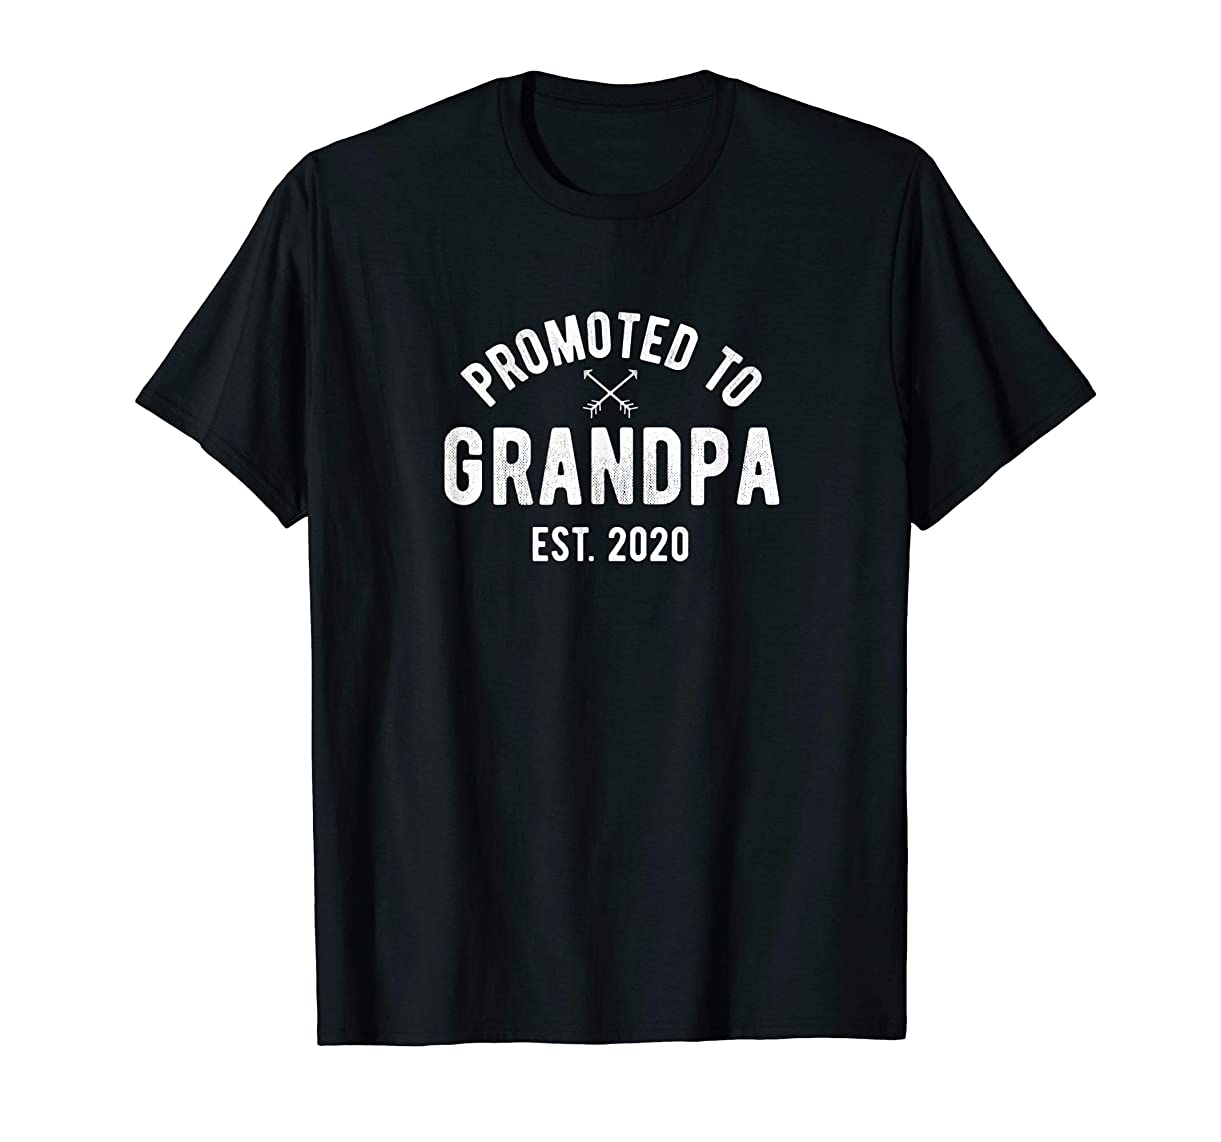 Mens Promoted to Grandpa 2020 New Baby Announcement Grandad Gift T-Shirt mejls7766